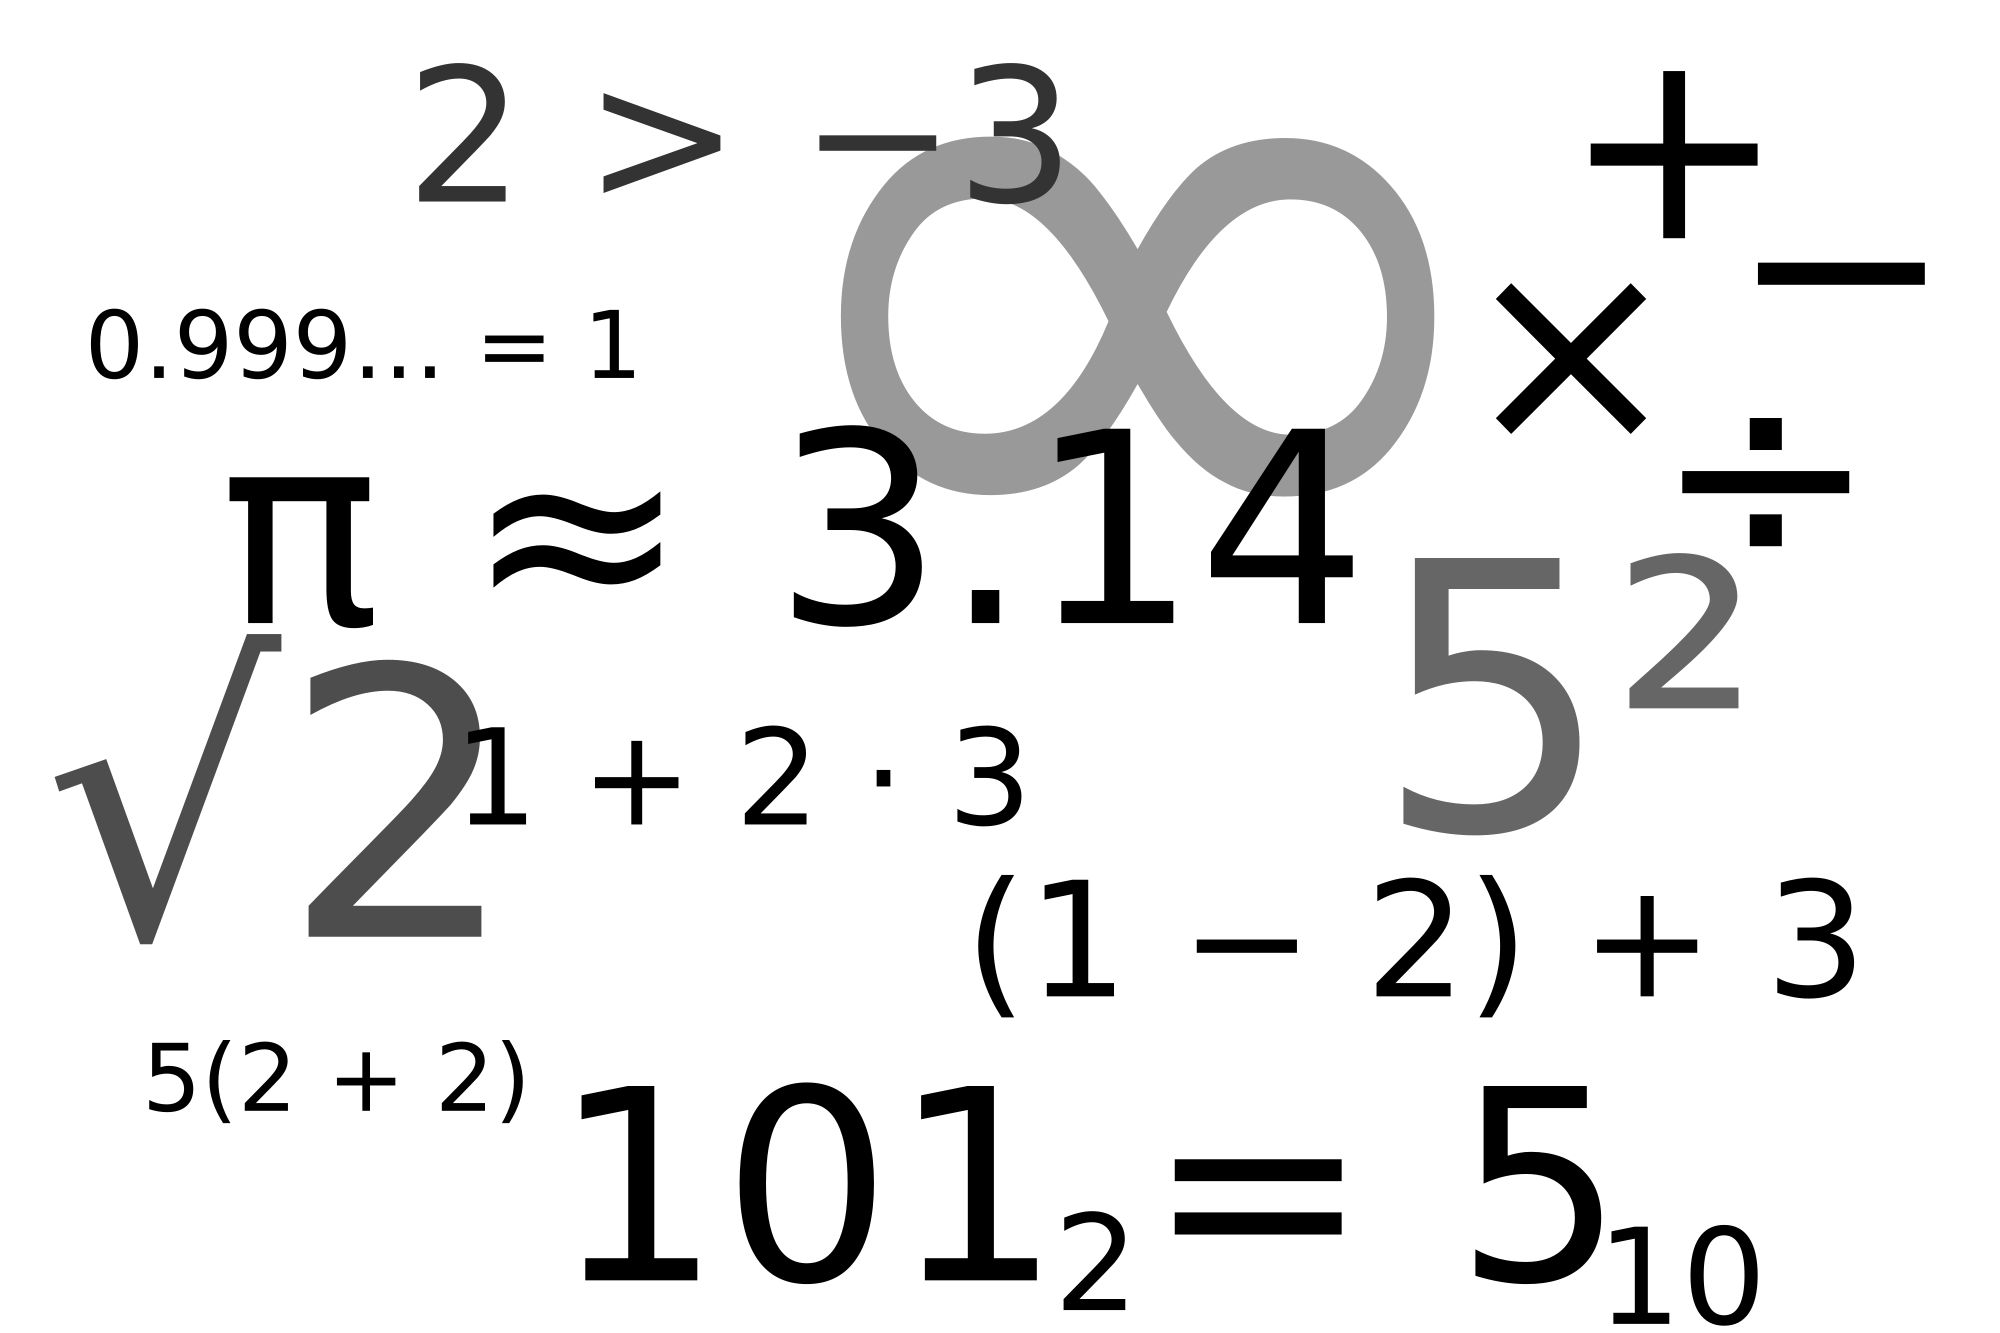 Wikipedia_Lots_of_math_symbols_and_numbers.jpg